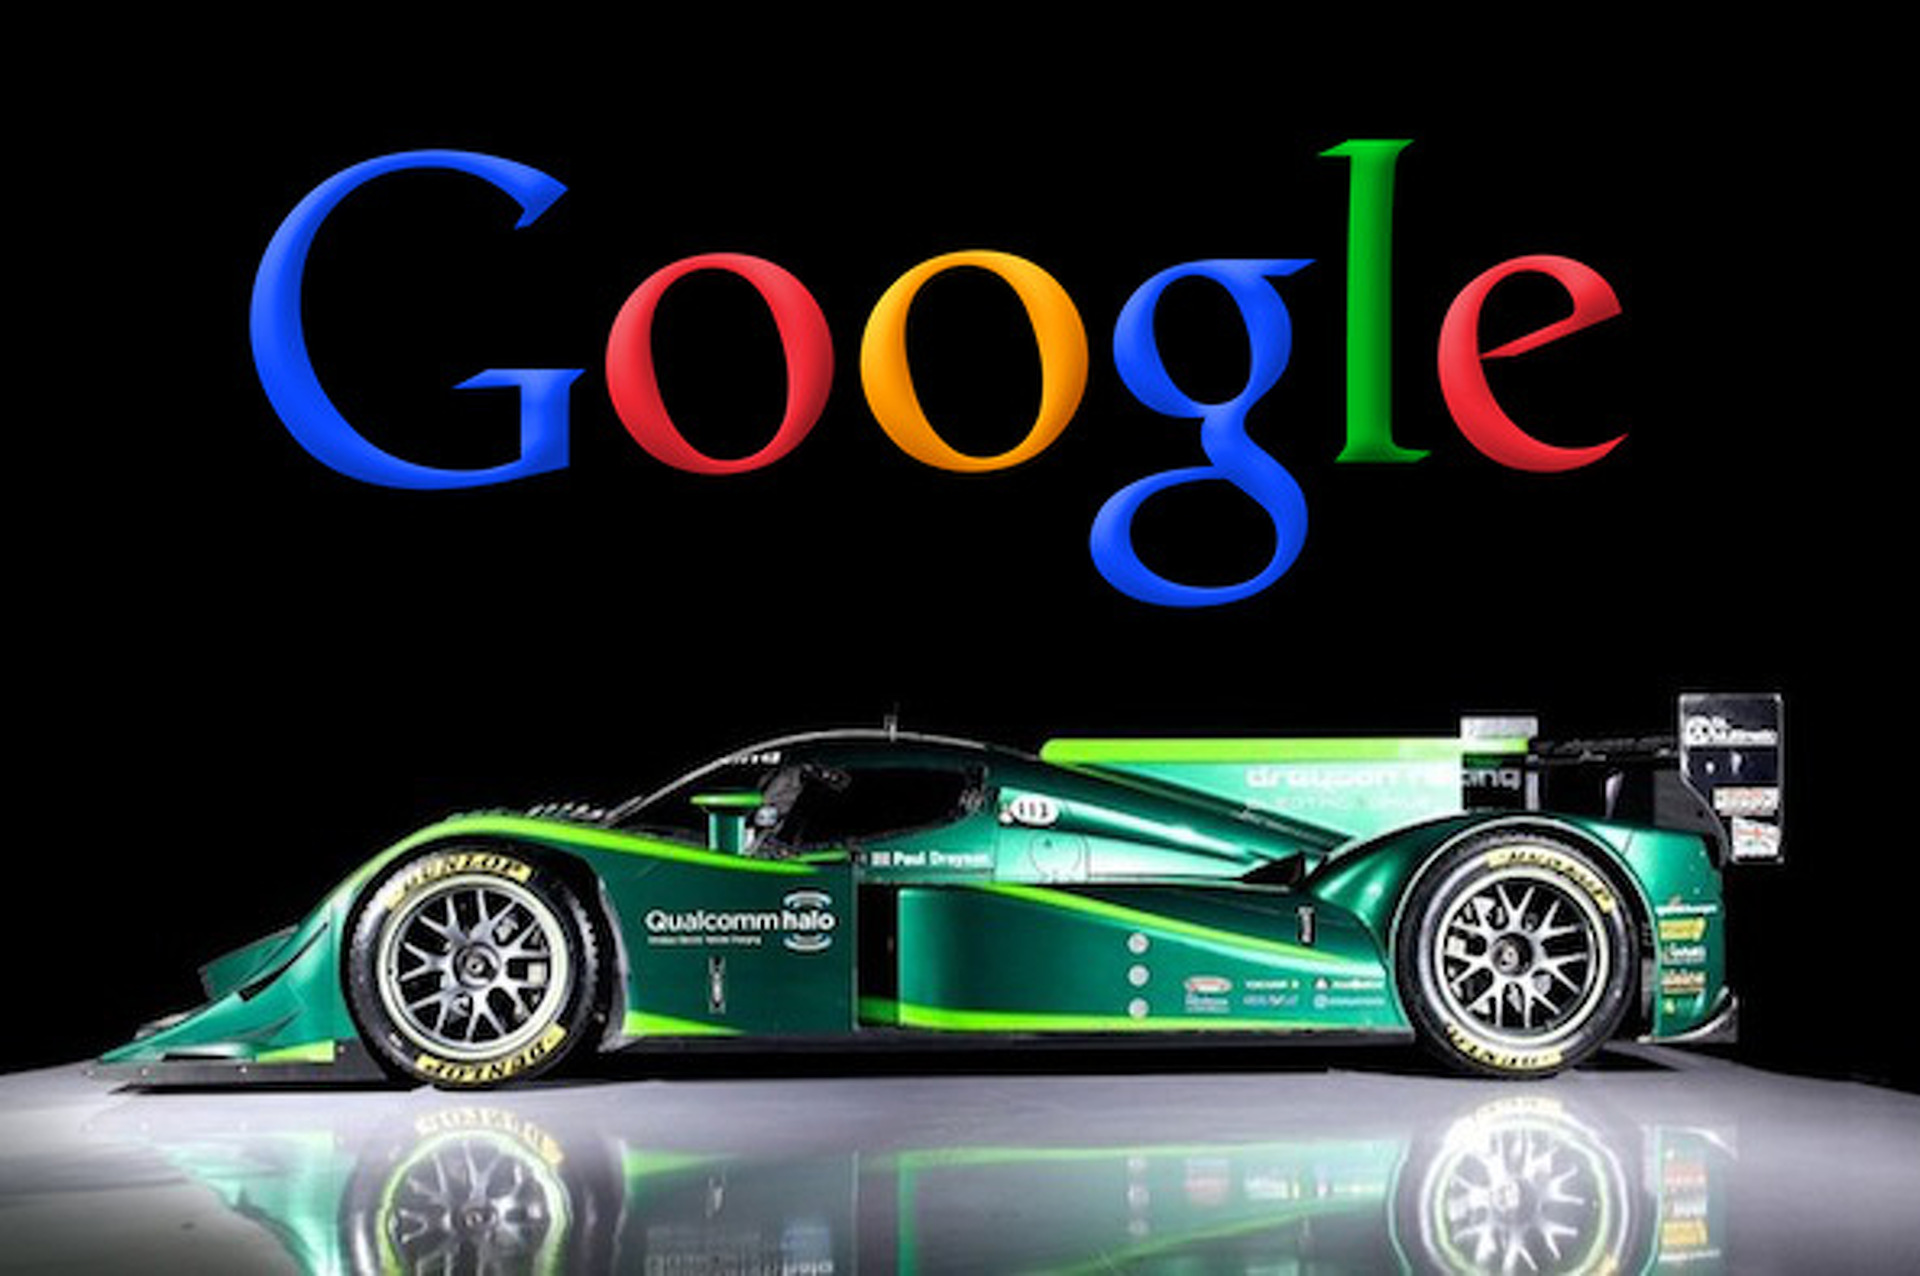 Google Poised To Enter Electric Car Industry?